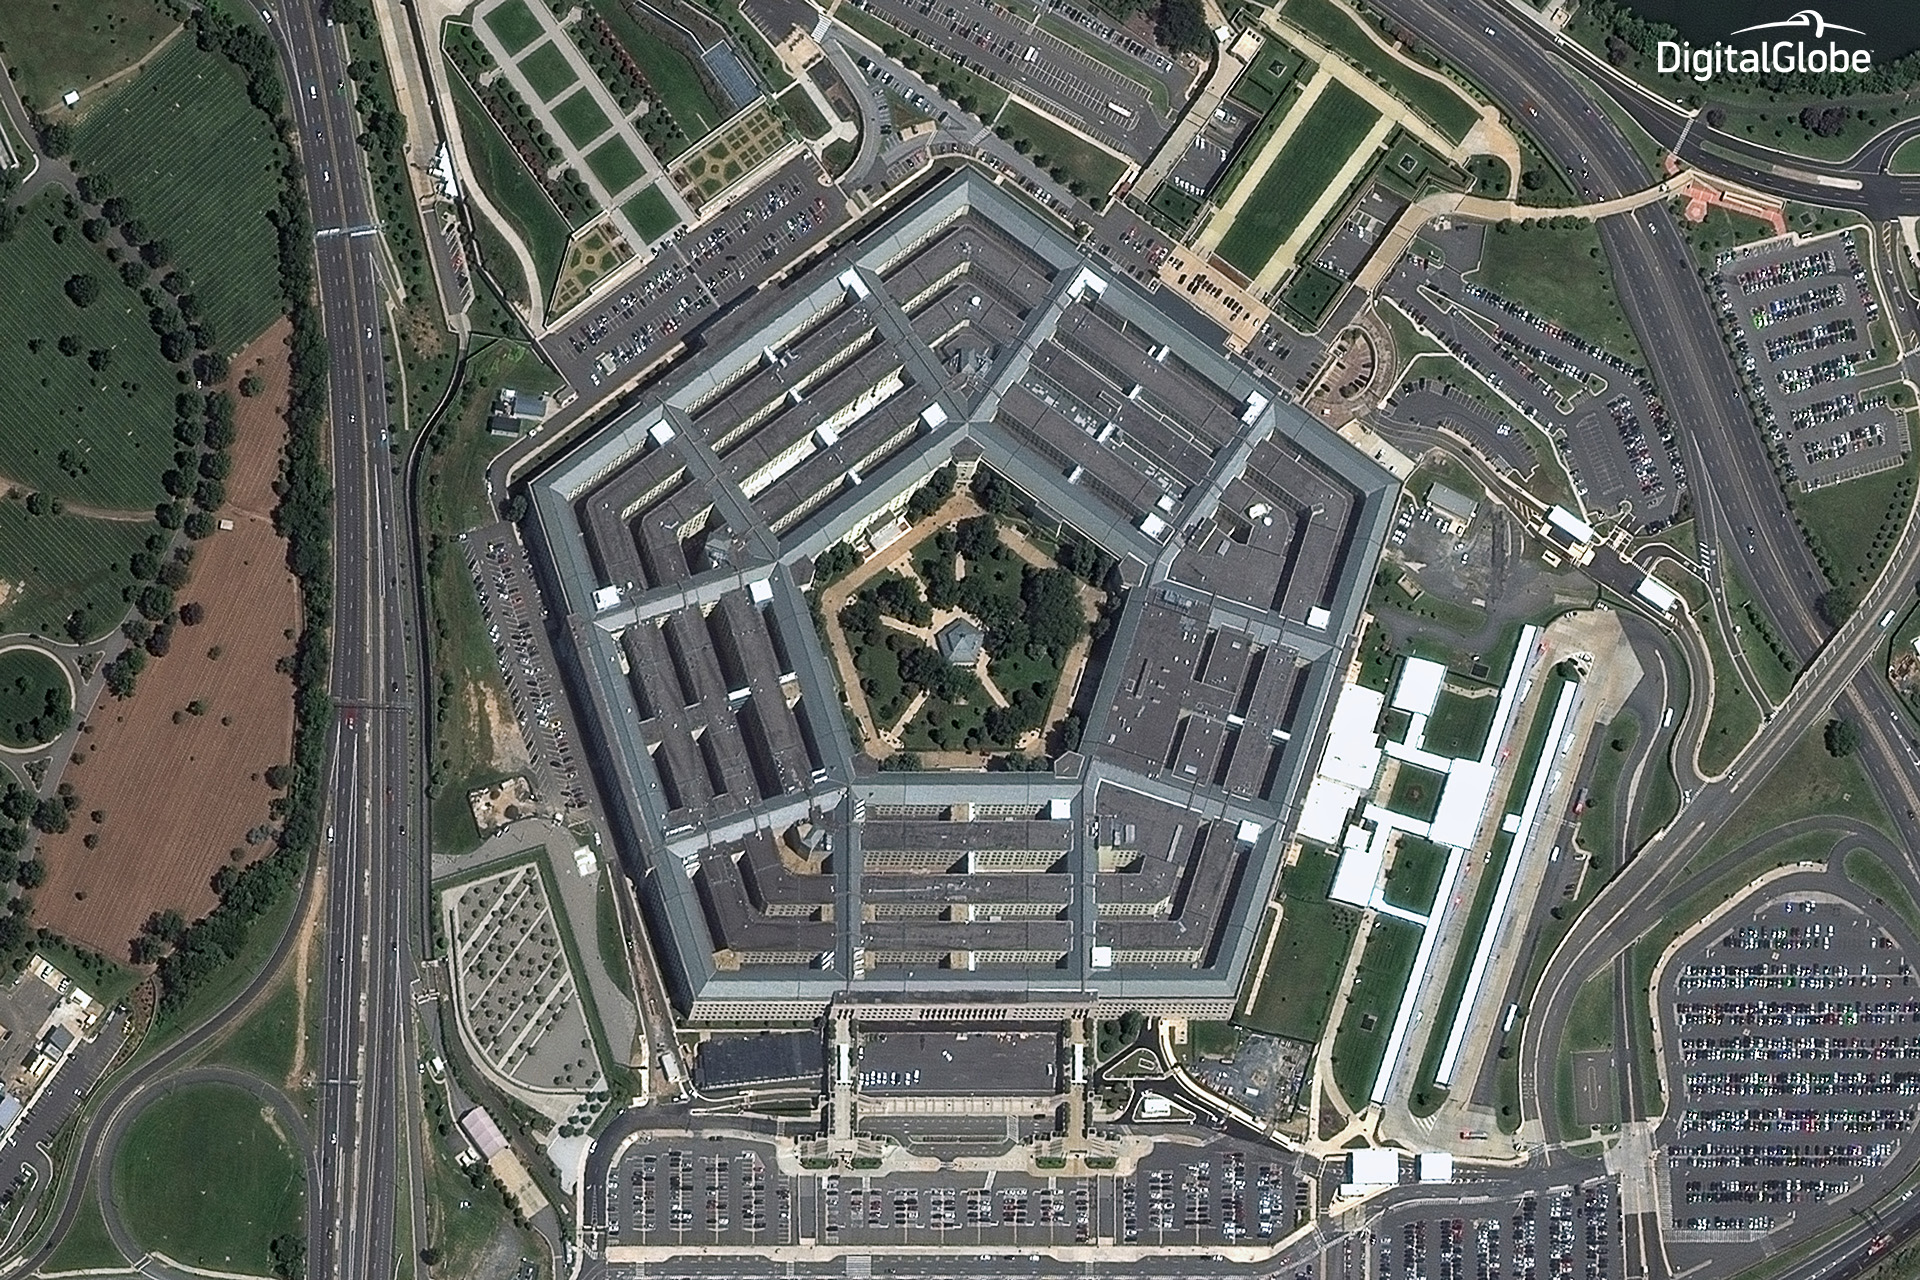 Pentagon, captured by WorldView-2, August 2014